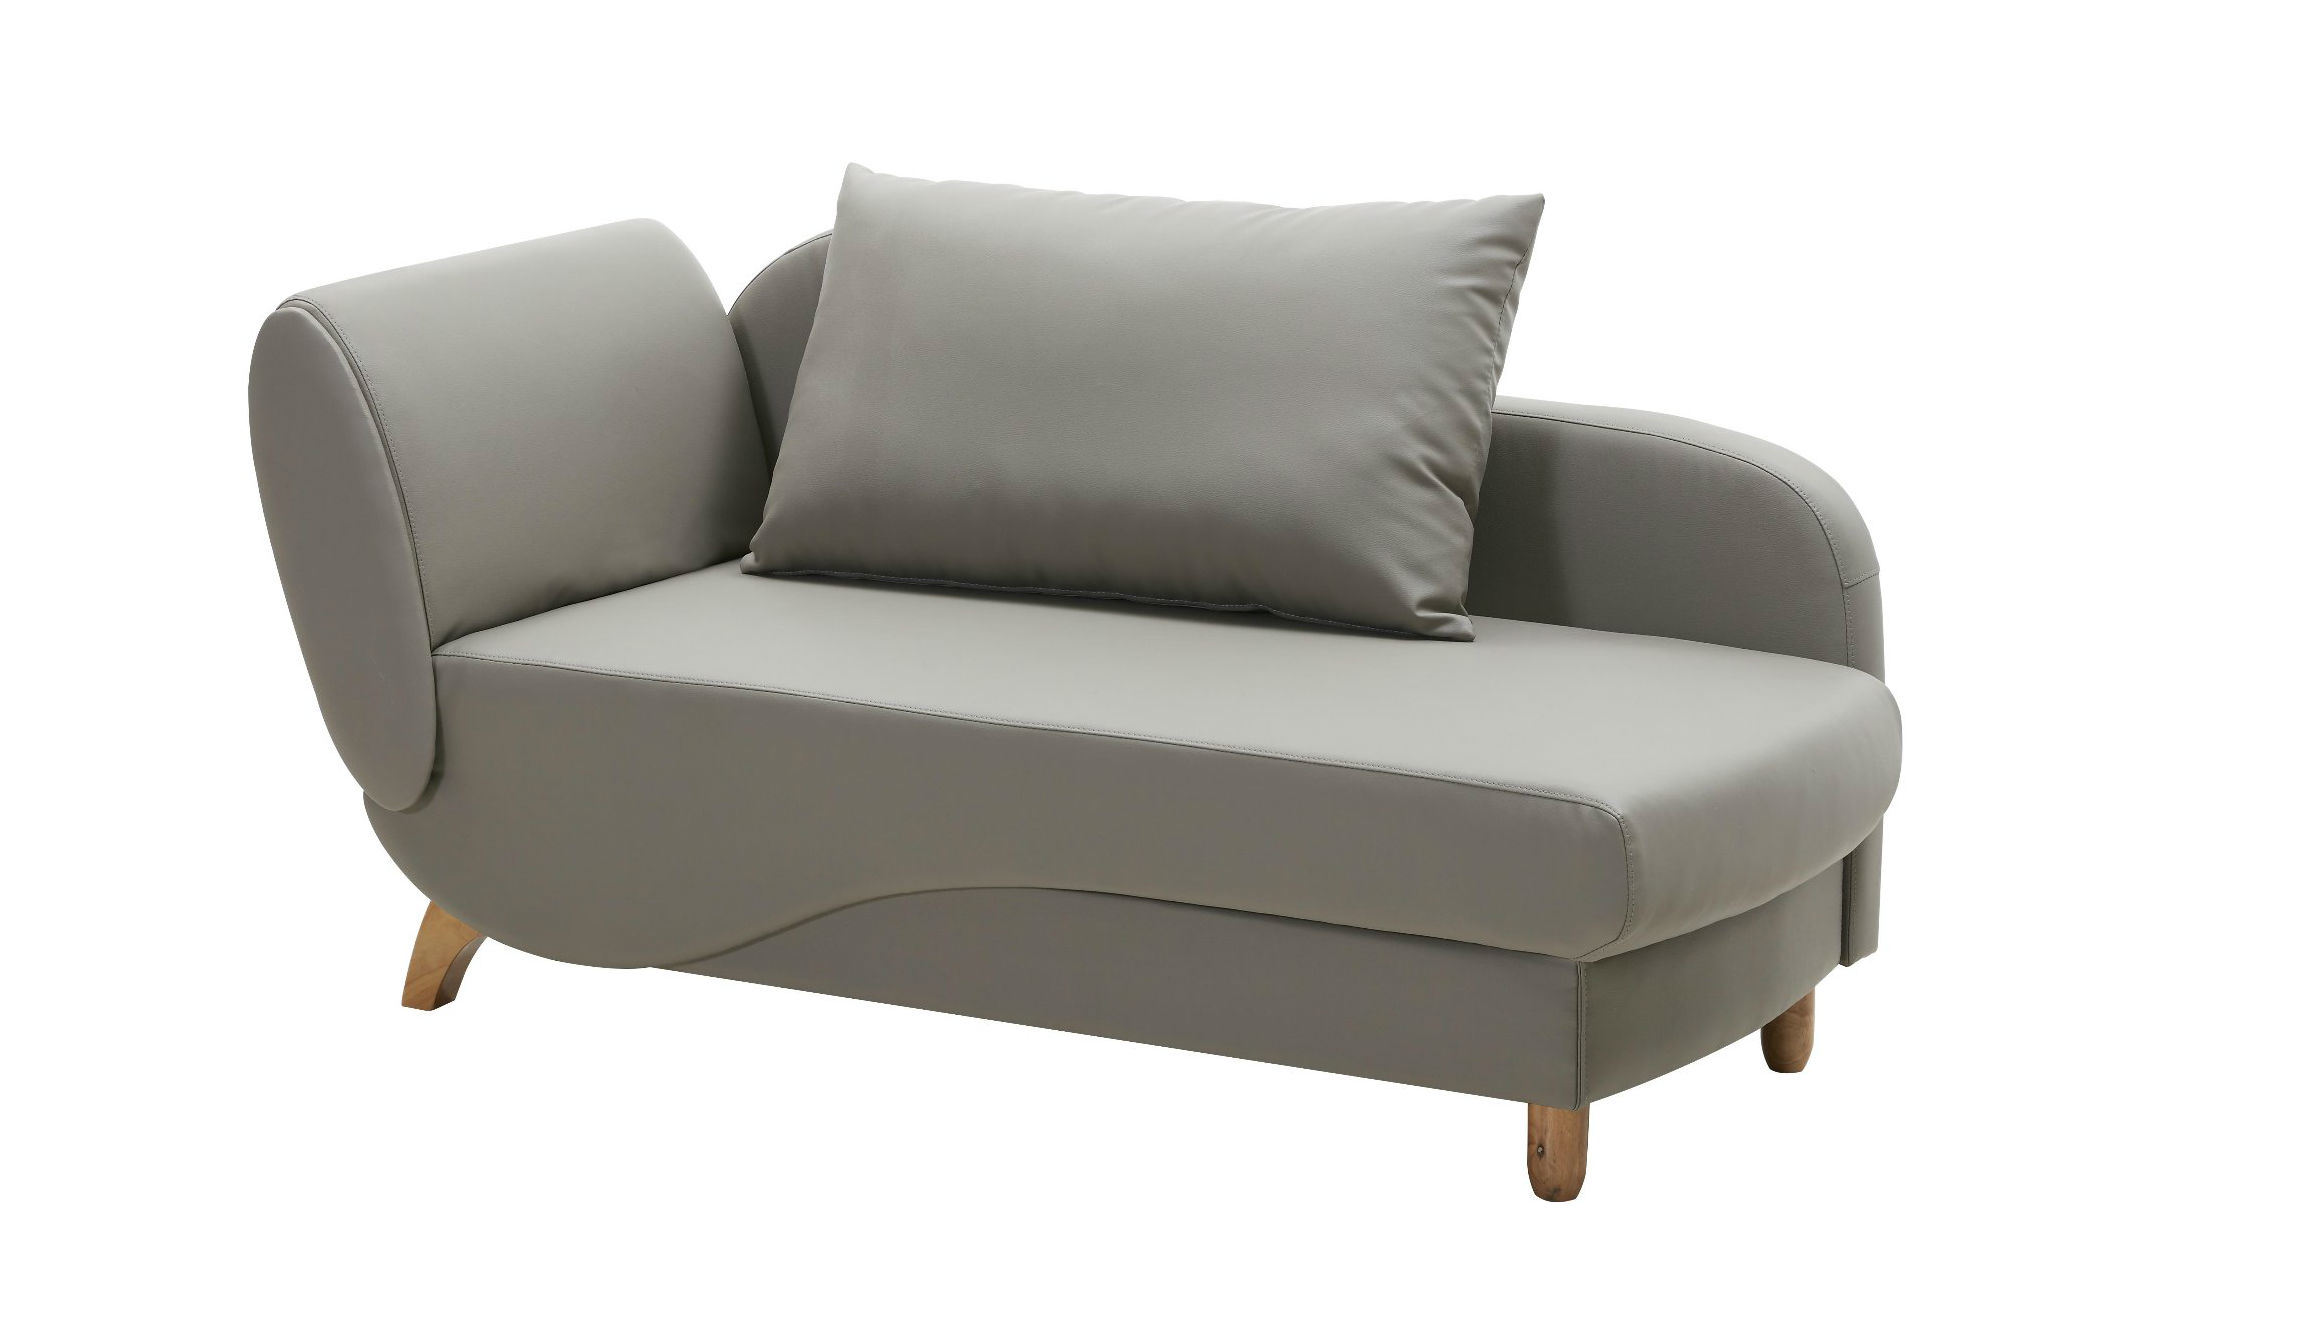 China Chaise Lounge Sofa Bed with Big Storage China Sofabed